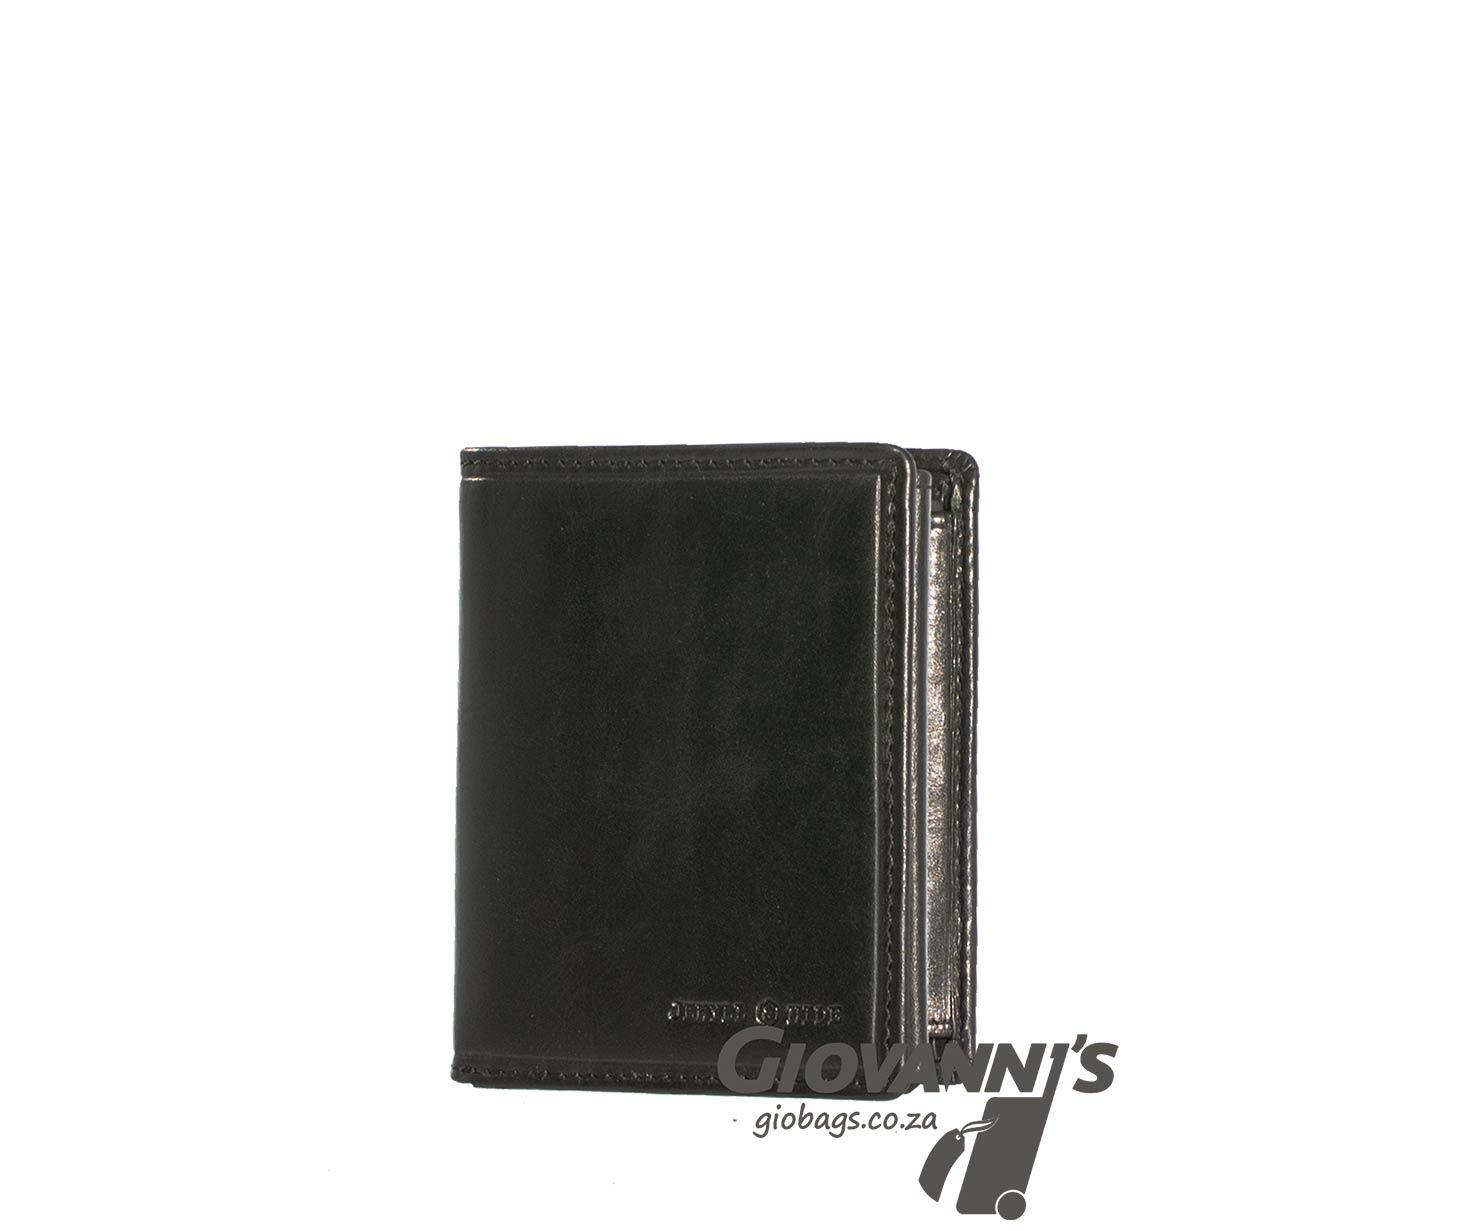 Giobags Jekyll and Hide Oxford Leather Wallet | 6742